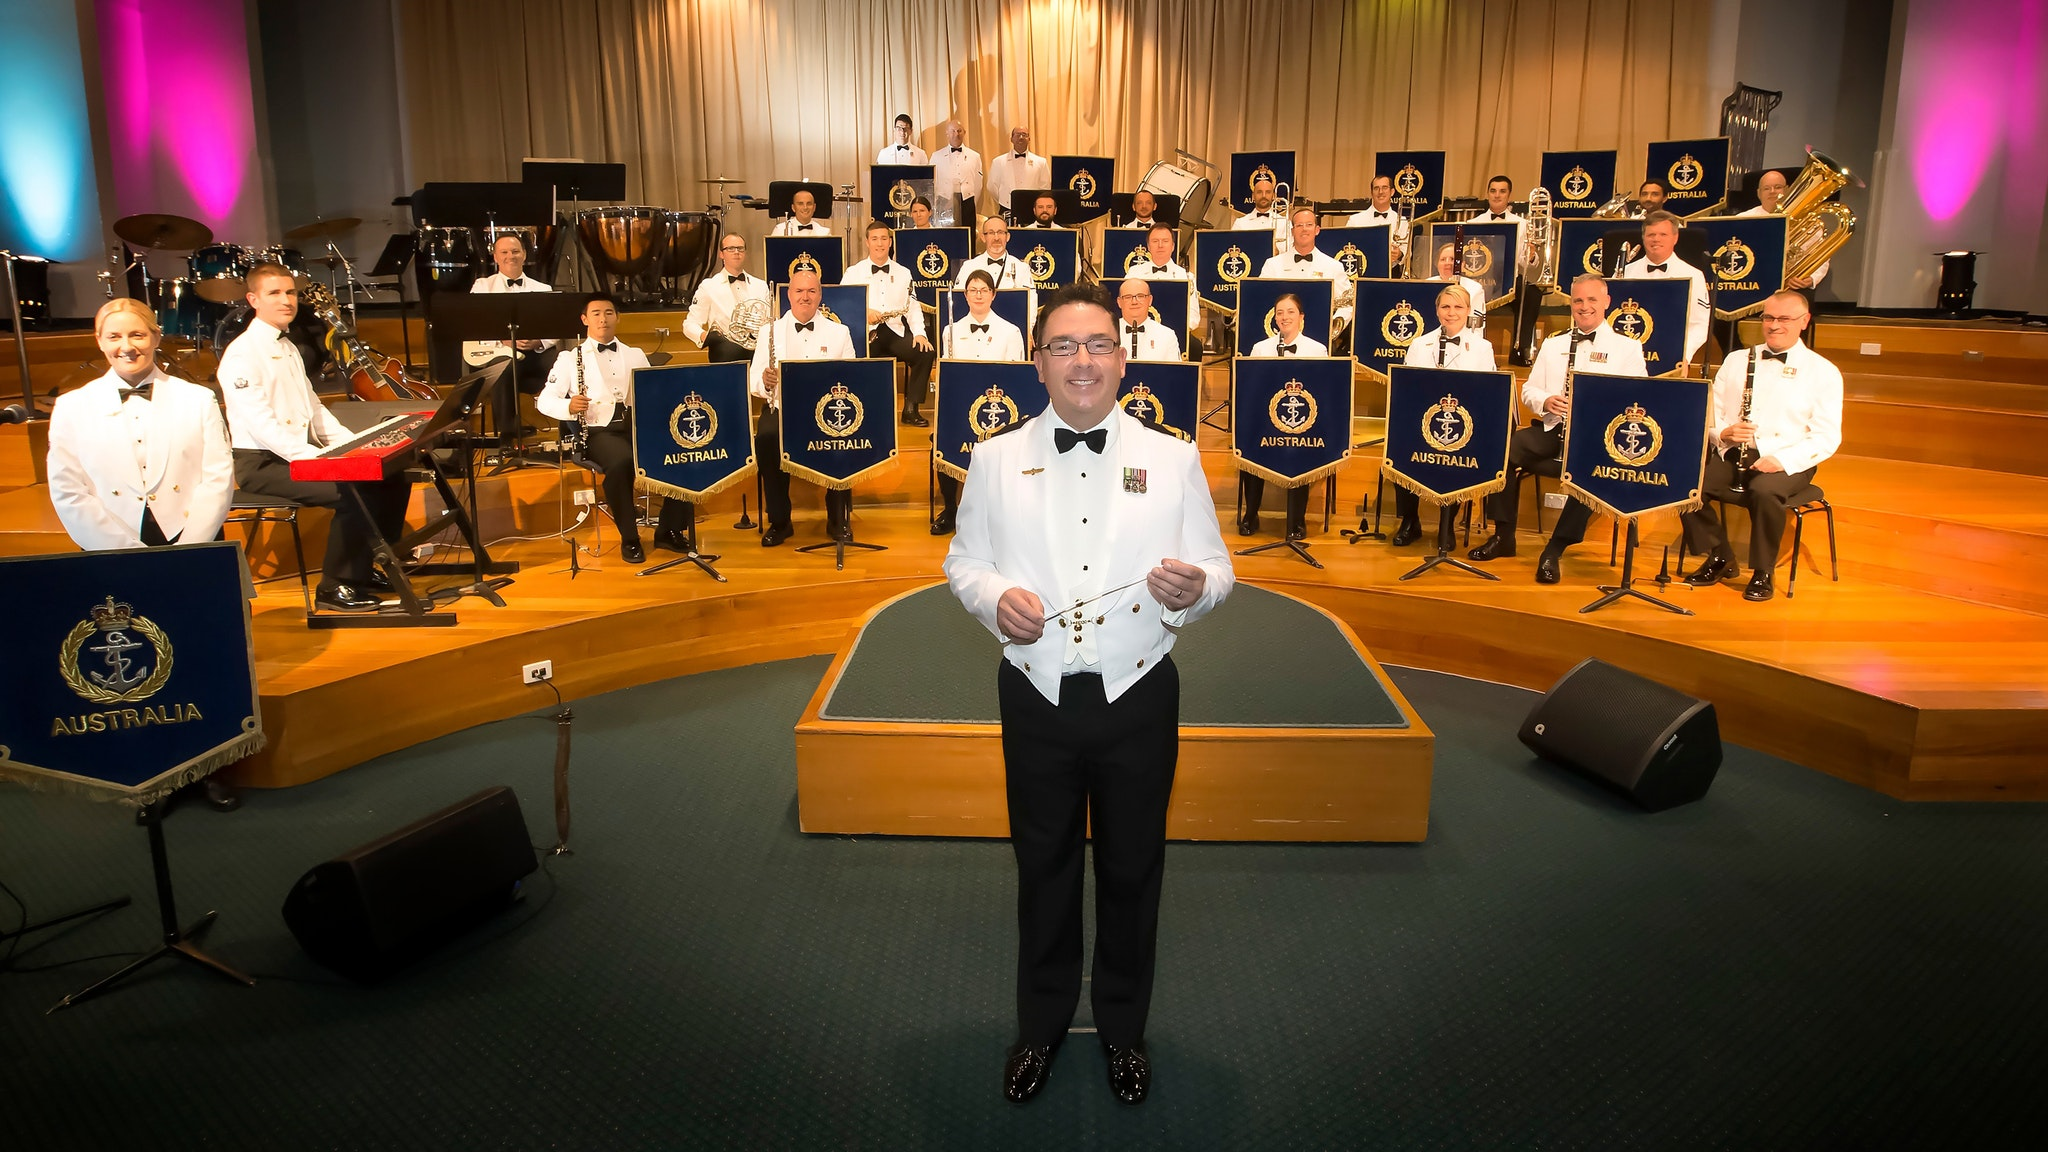 Royal Australian Navy Band Melbourne